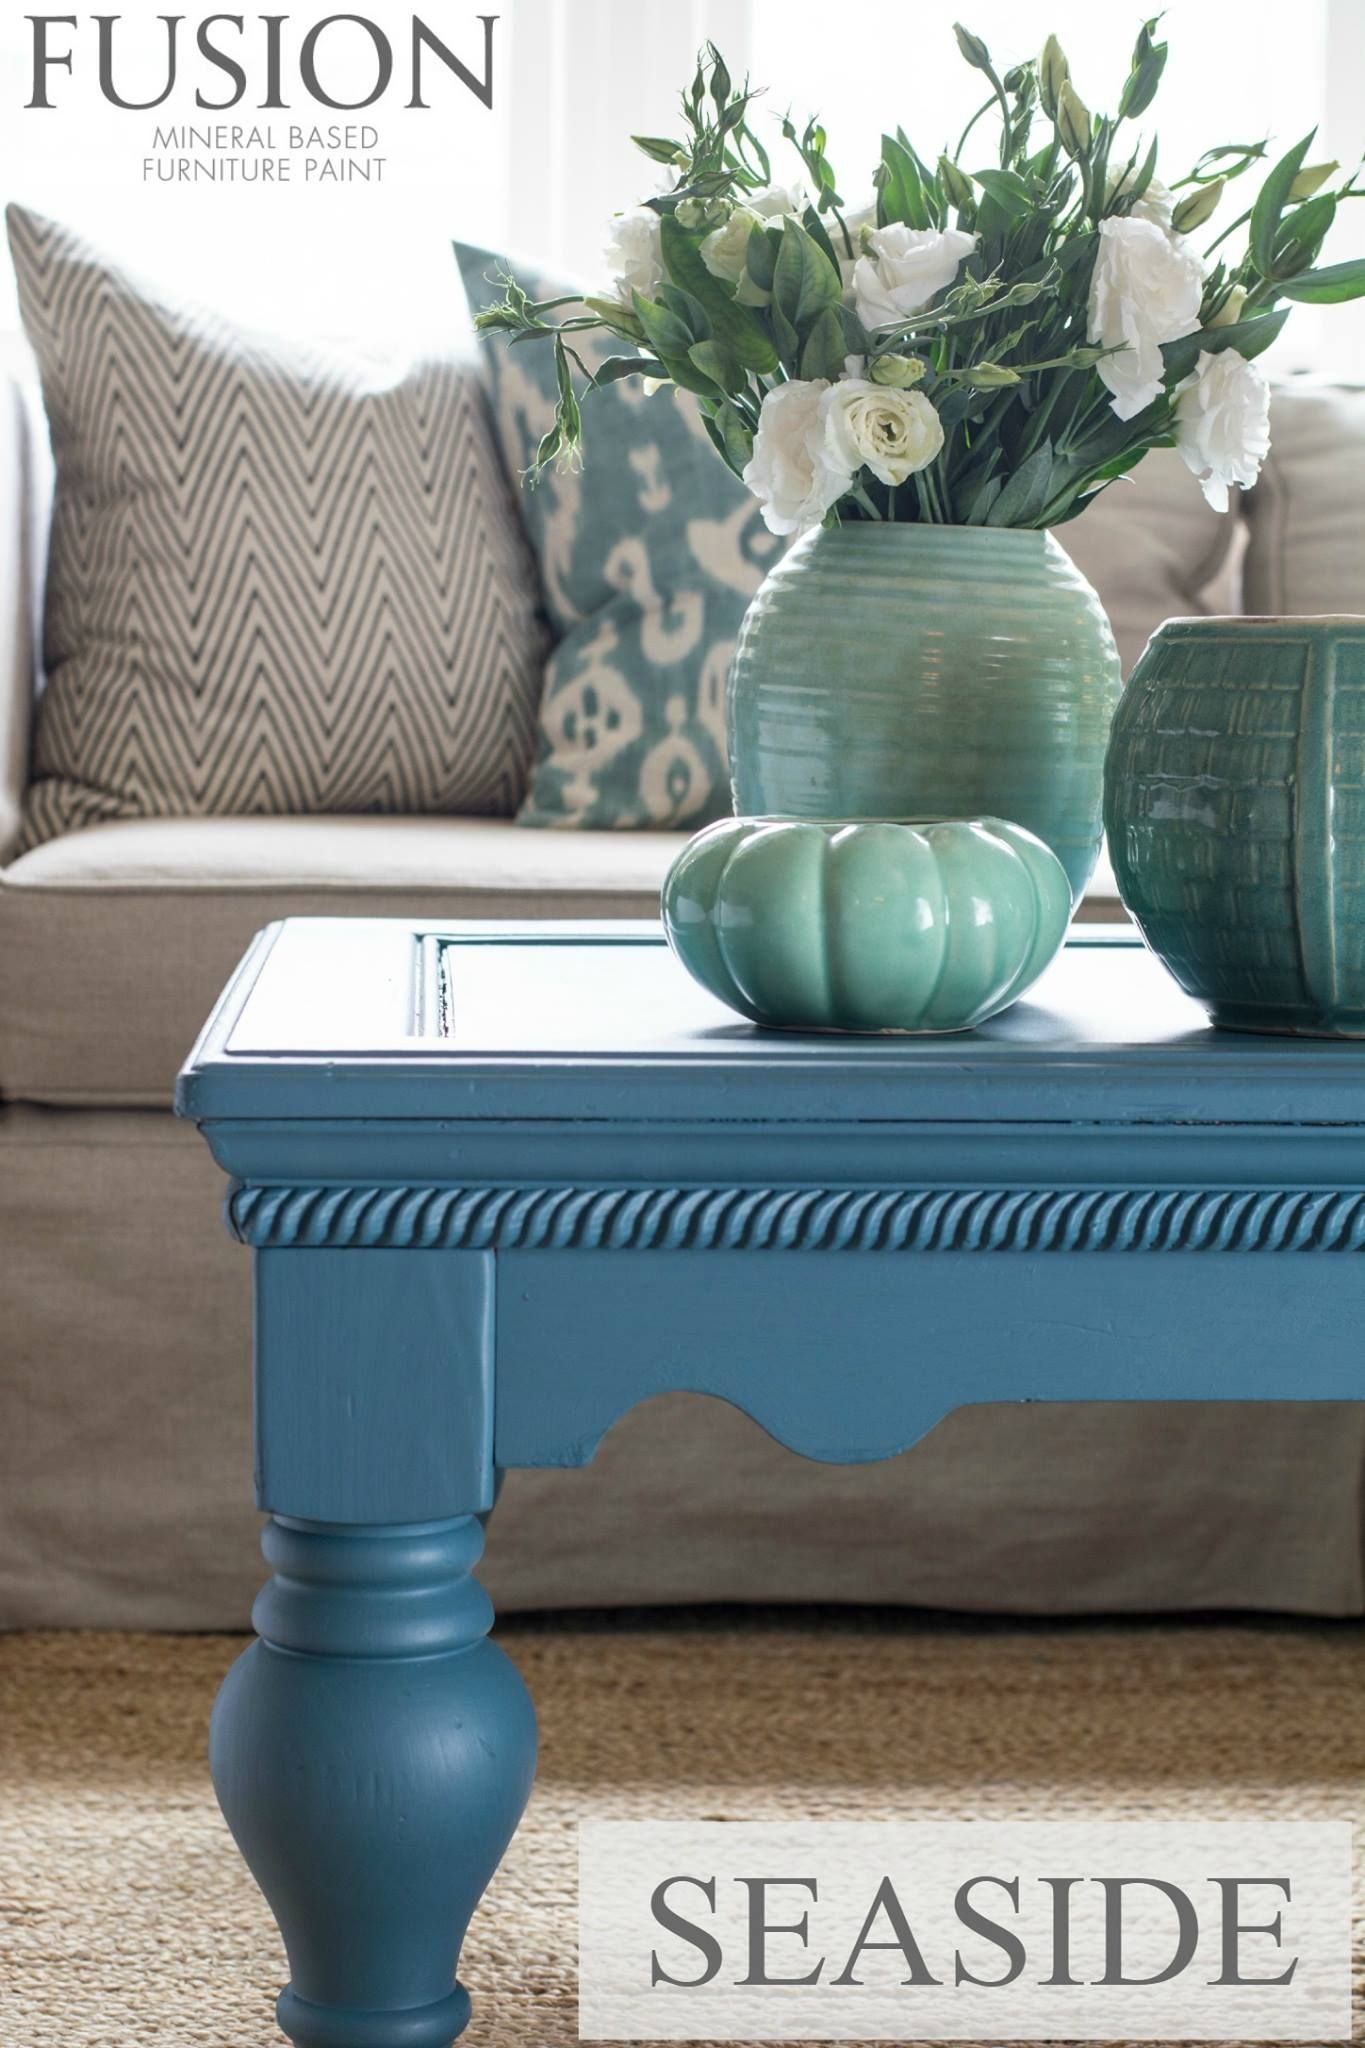 color ideas for painting furniture. Furniture Ideas · Seaside Fusion Mineral Paint...gorgeous Color! Color For Painting T